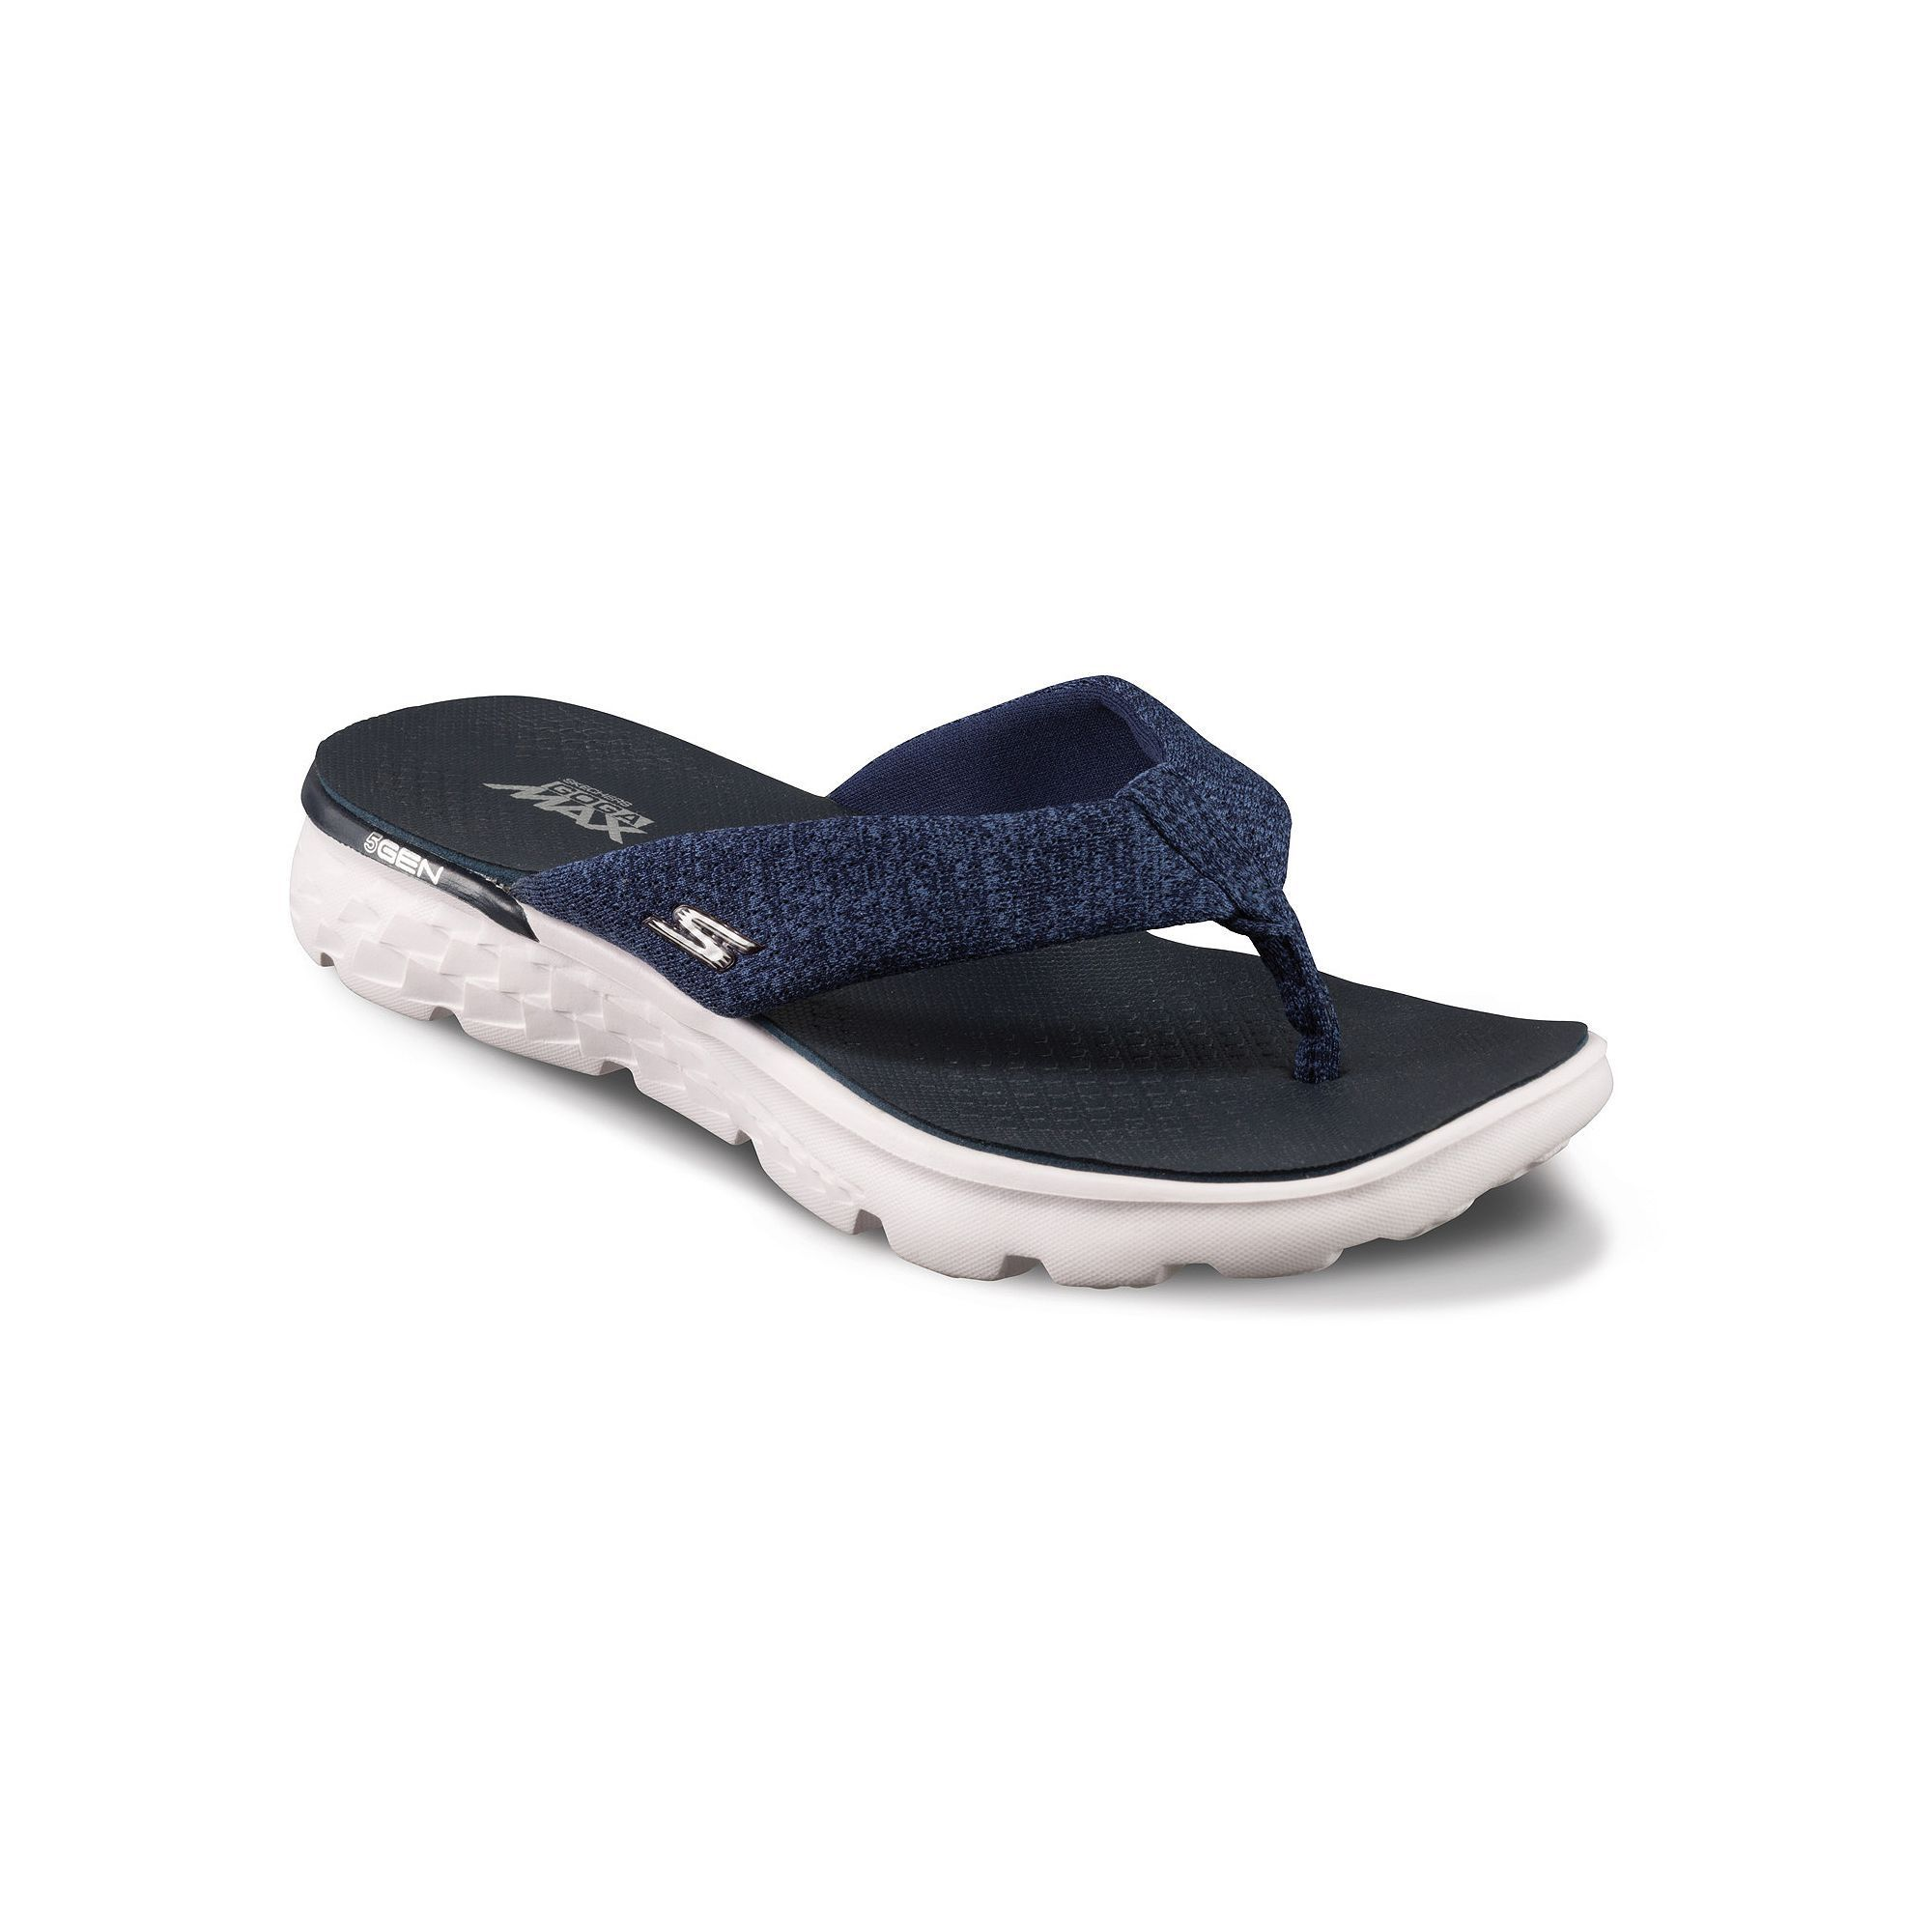 Womens sandals in size 11 - Skechers On The Go 400 Vivacity Women S Sandals Size 11 Purple Oth